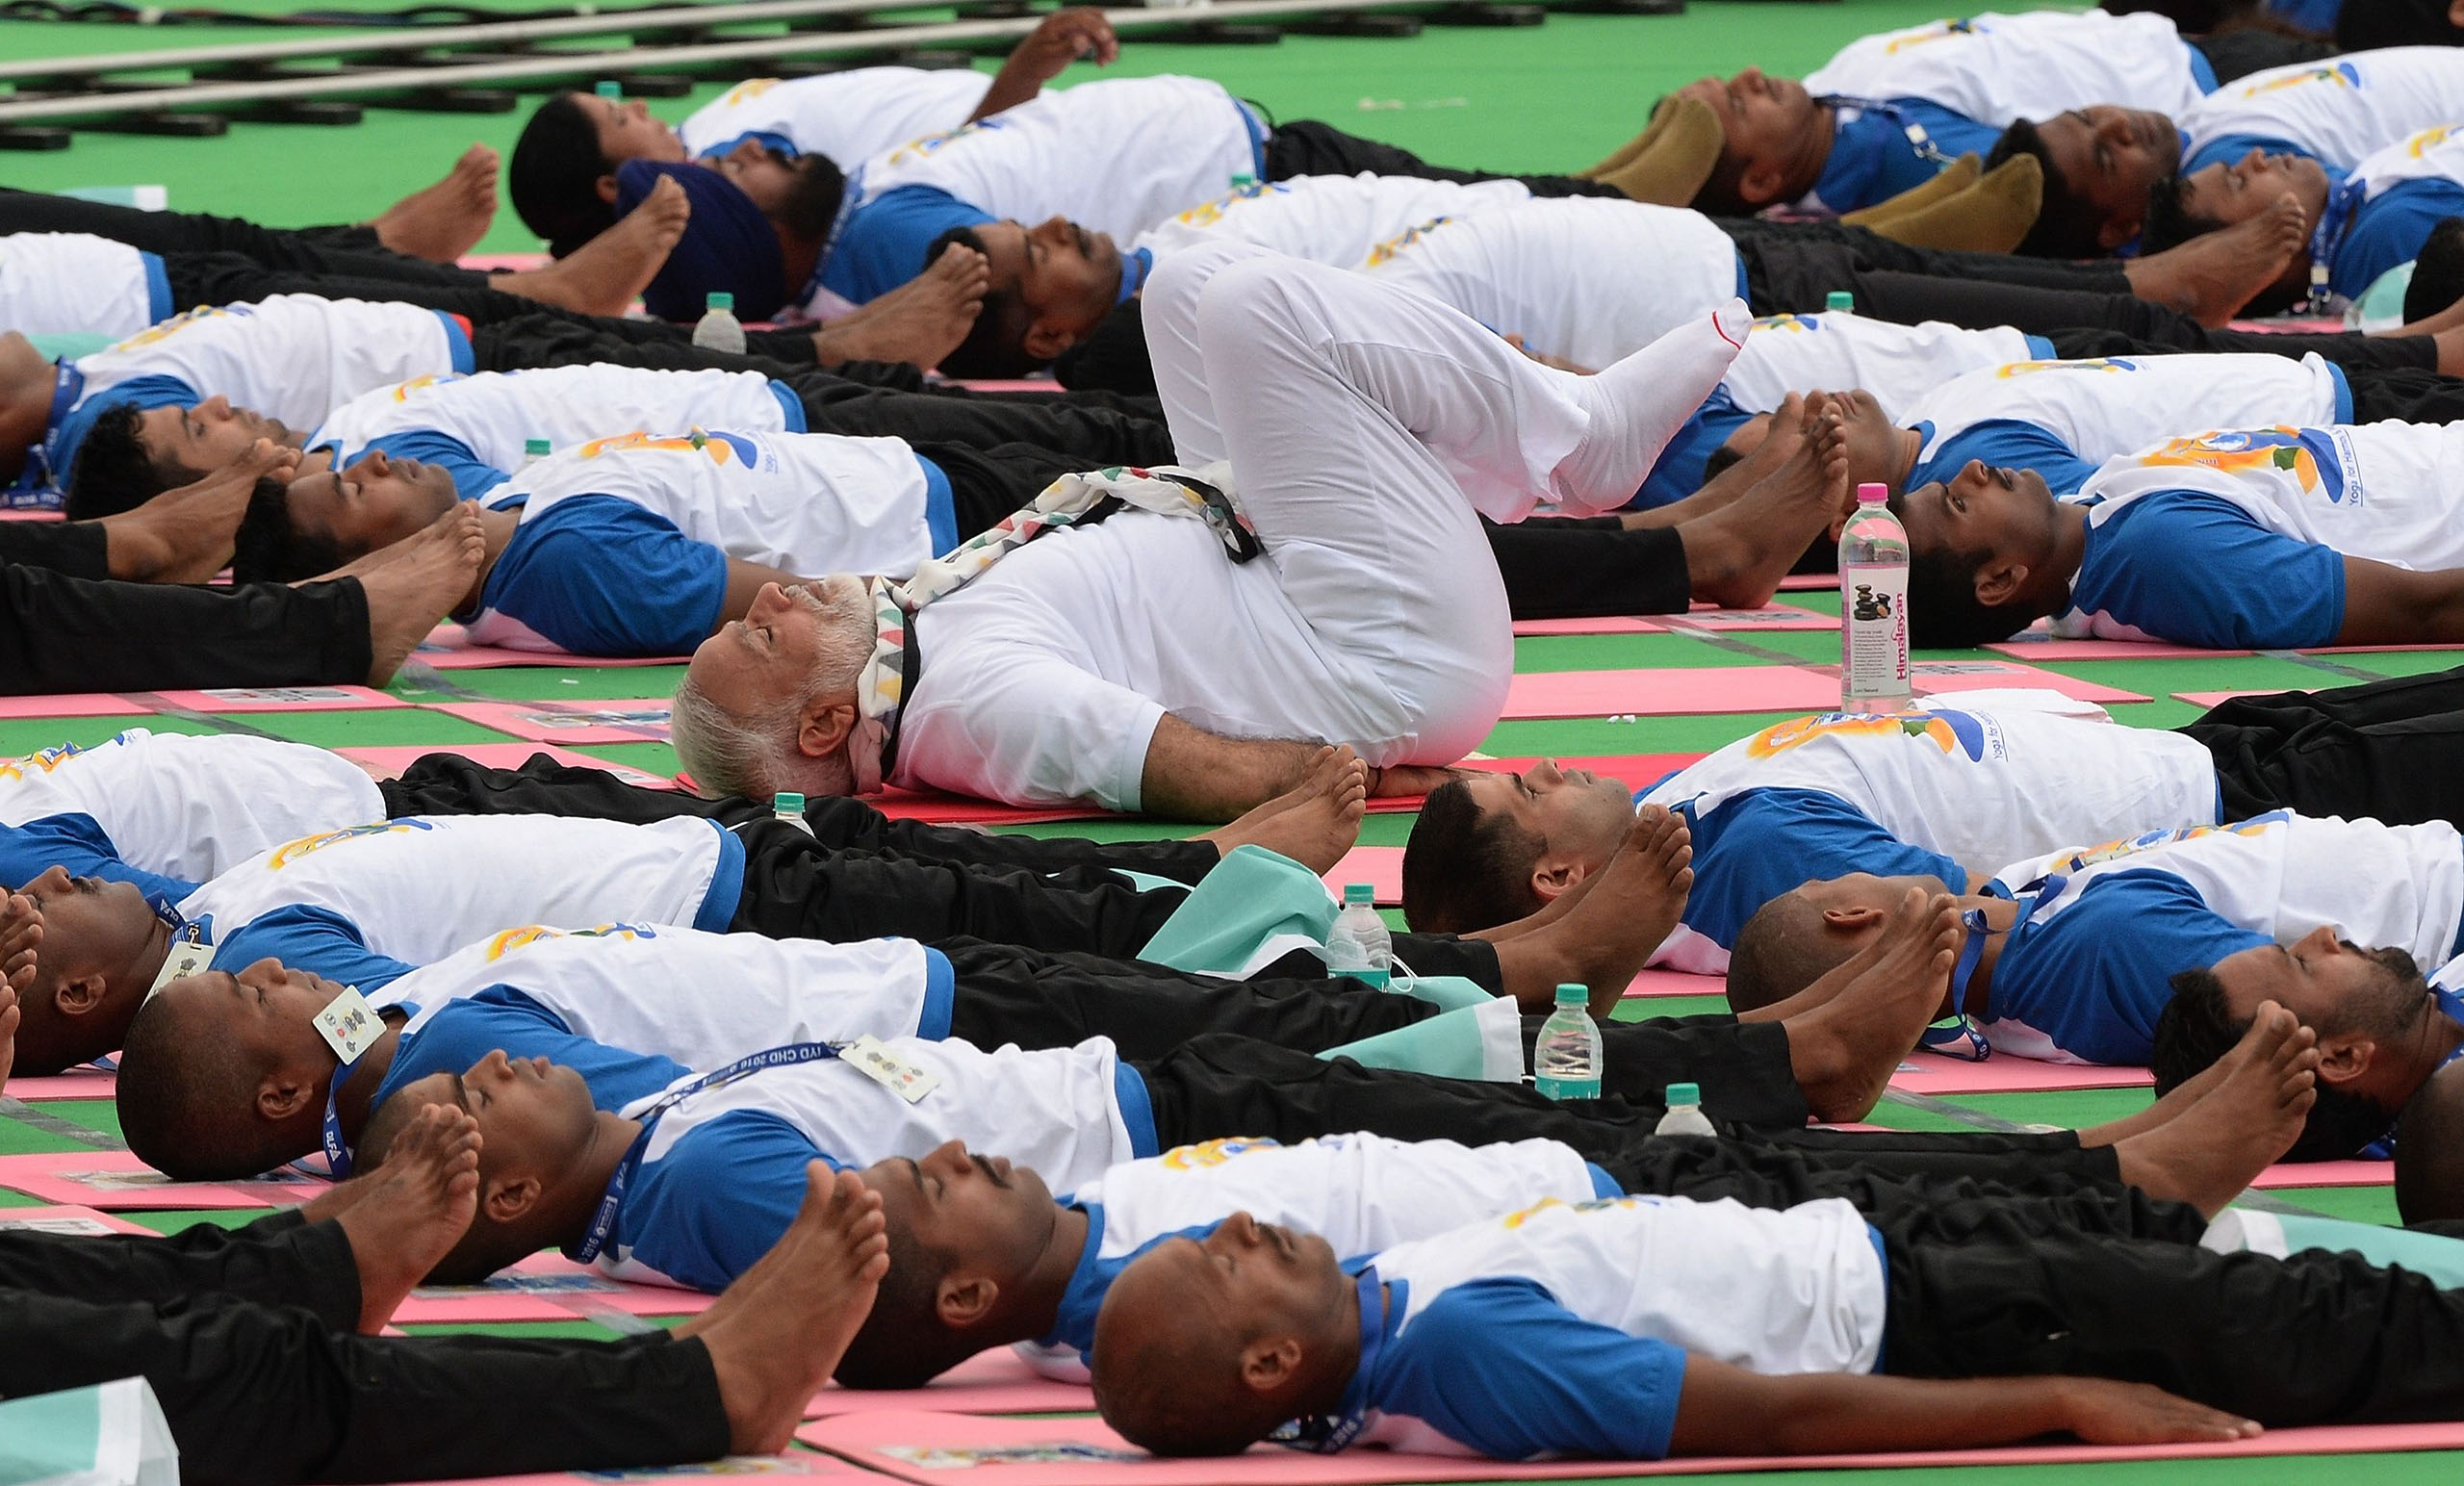 Indian Prime Minister Narendra Modi participates in a mass yoga session along with other Indian yoga practitioners to mark the 2nd International Yoga Day at Captol complex in Chandigarh, India, on June 21, 2016.